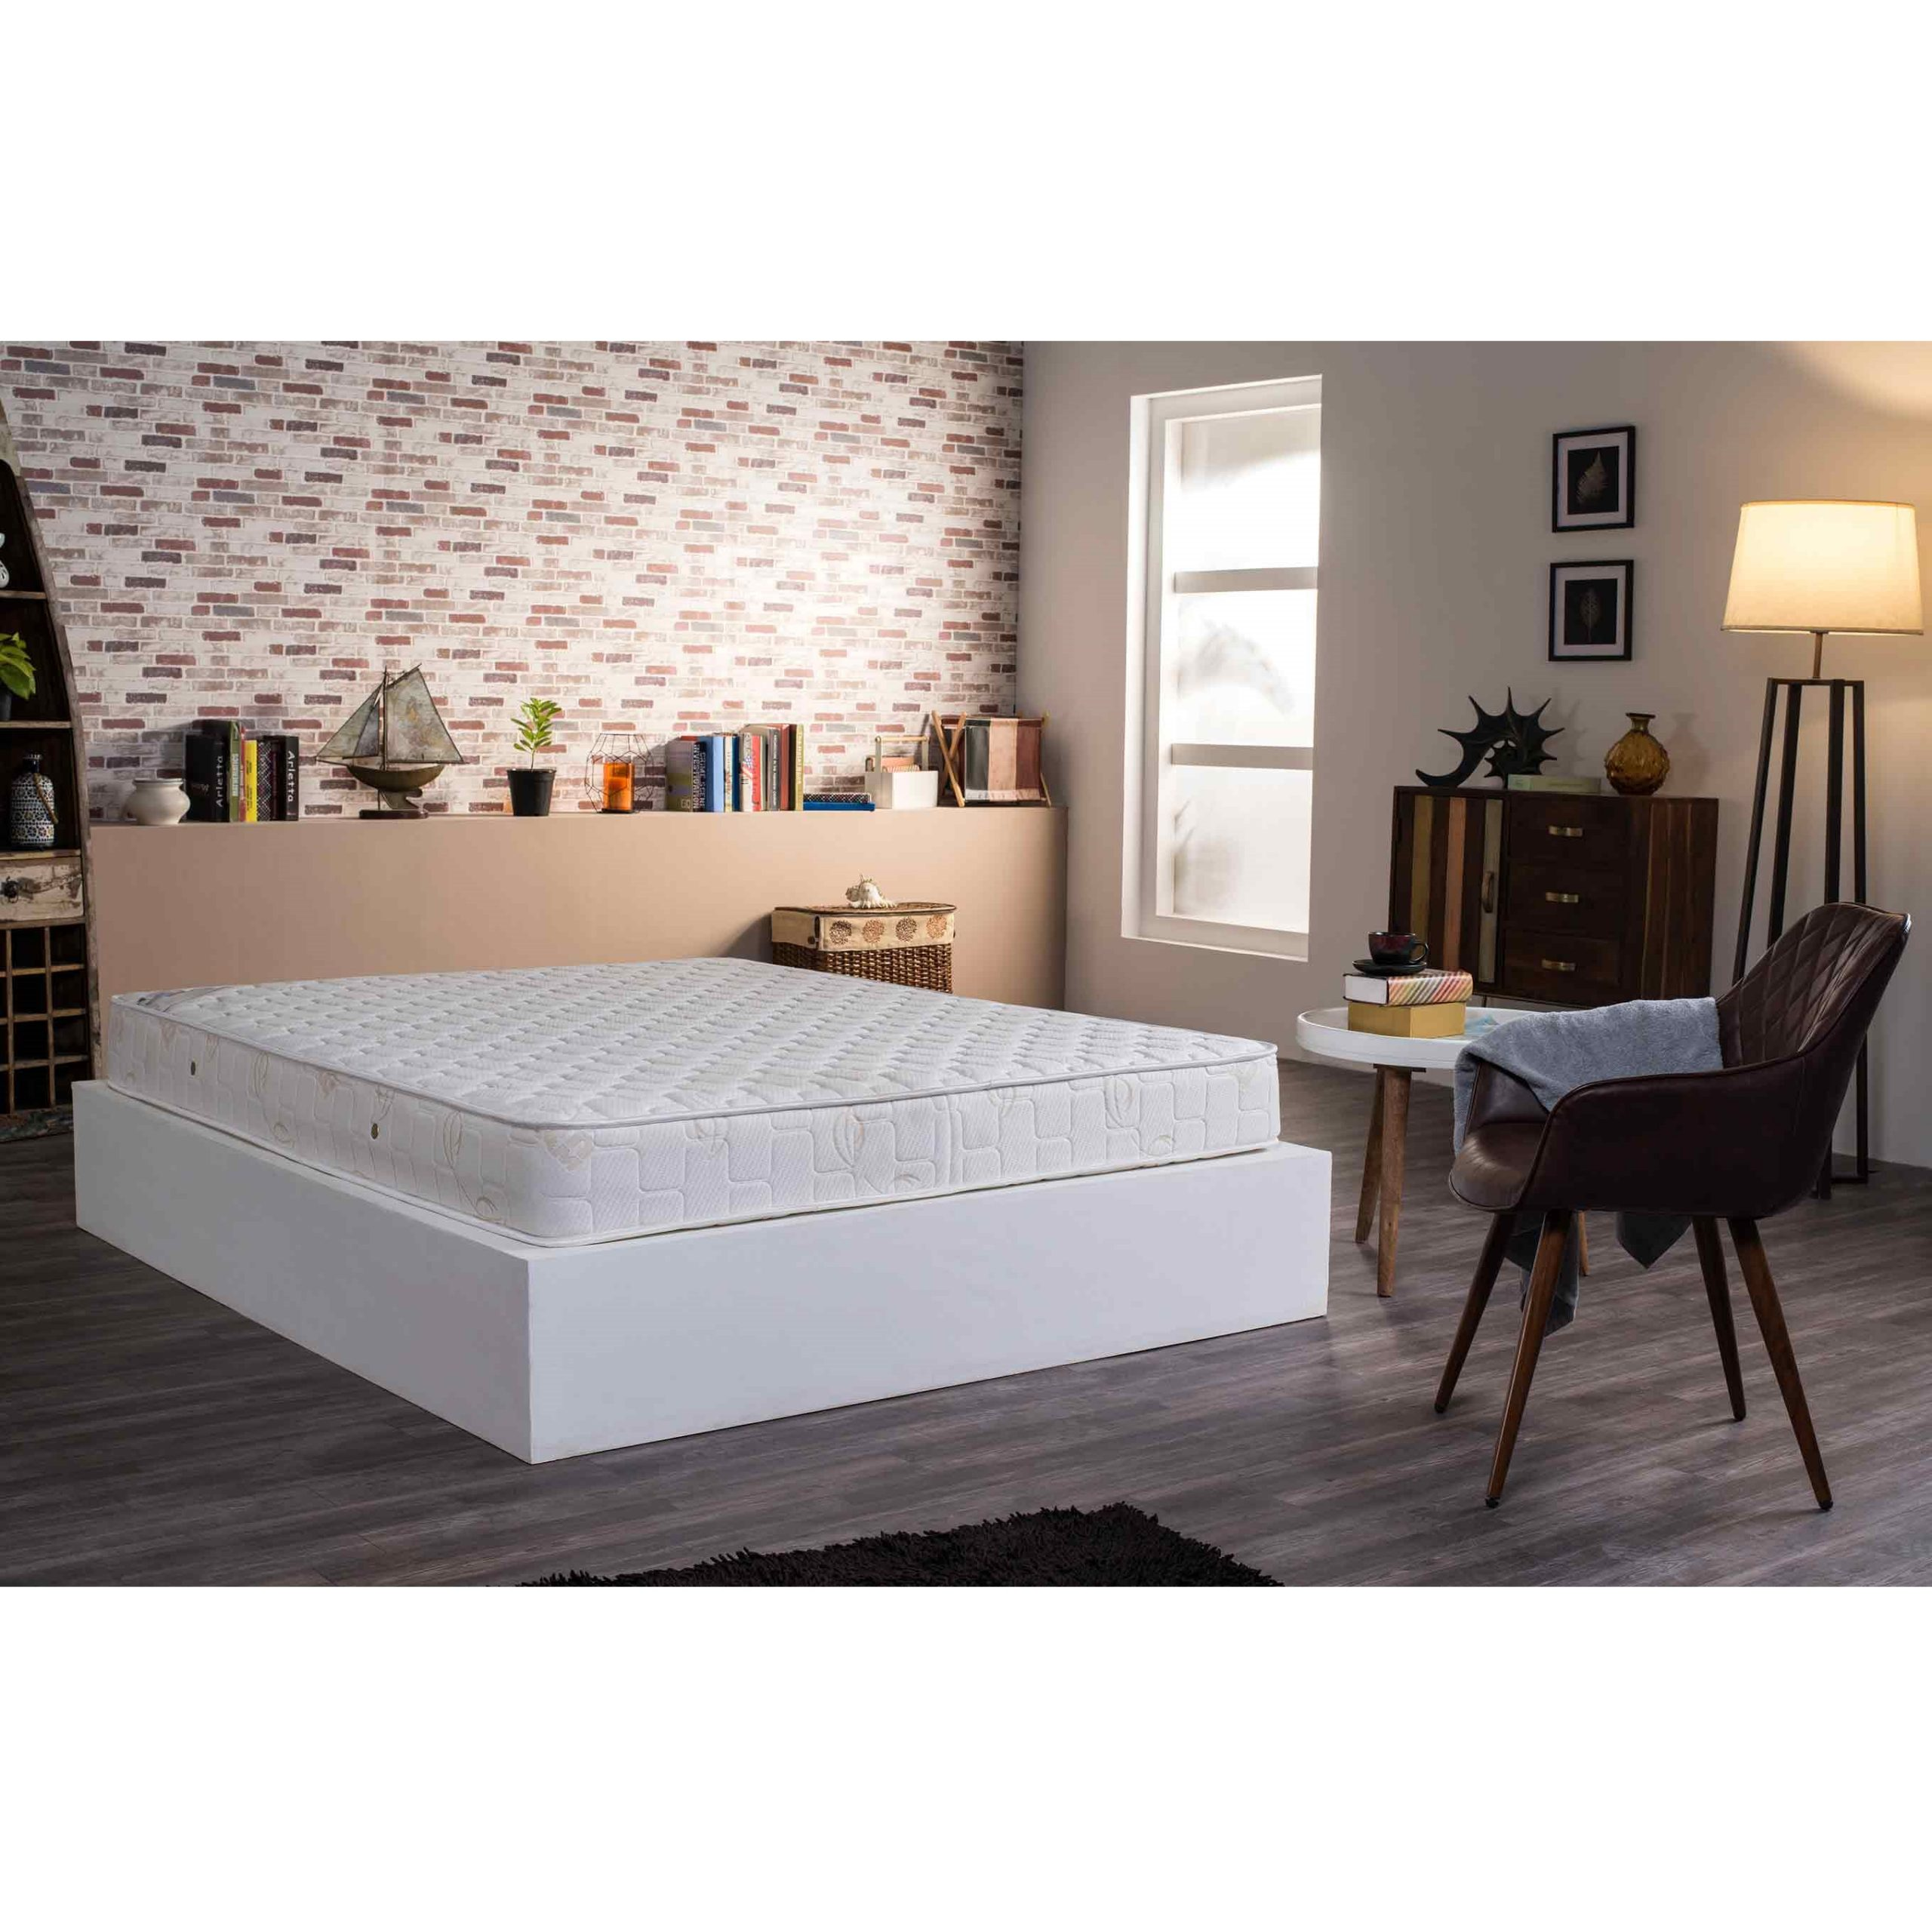 How to choose the best memory foam mattress with a sturdy 7-inch layer?